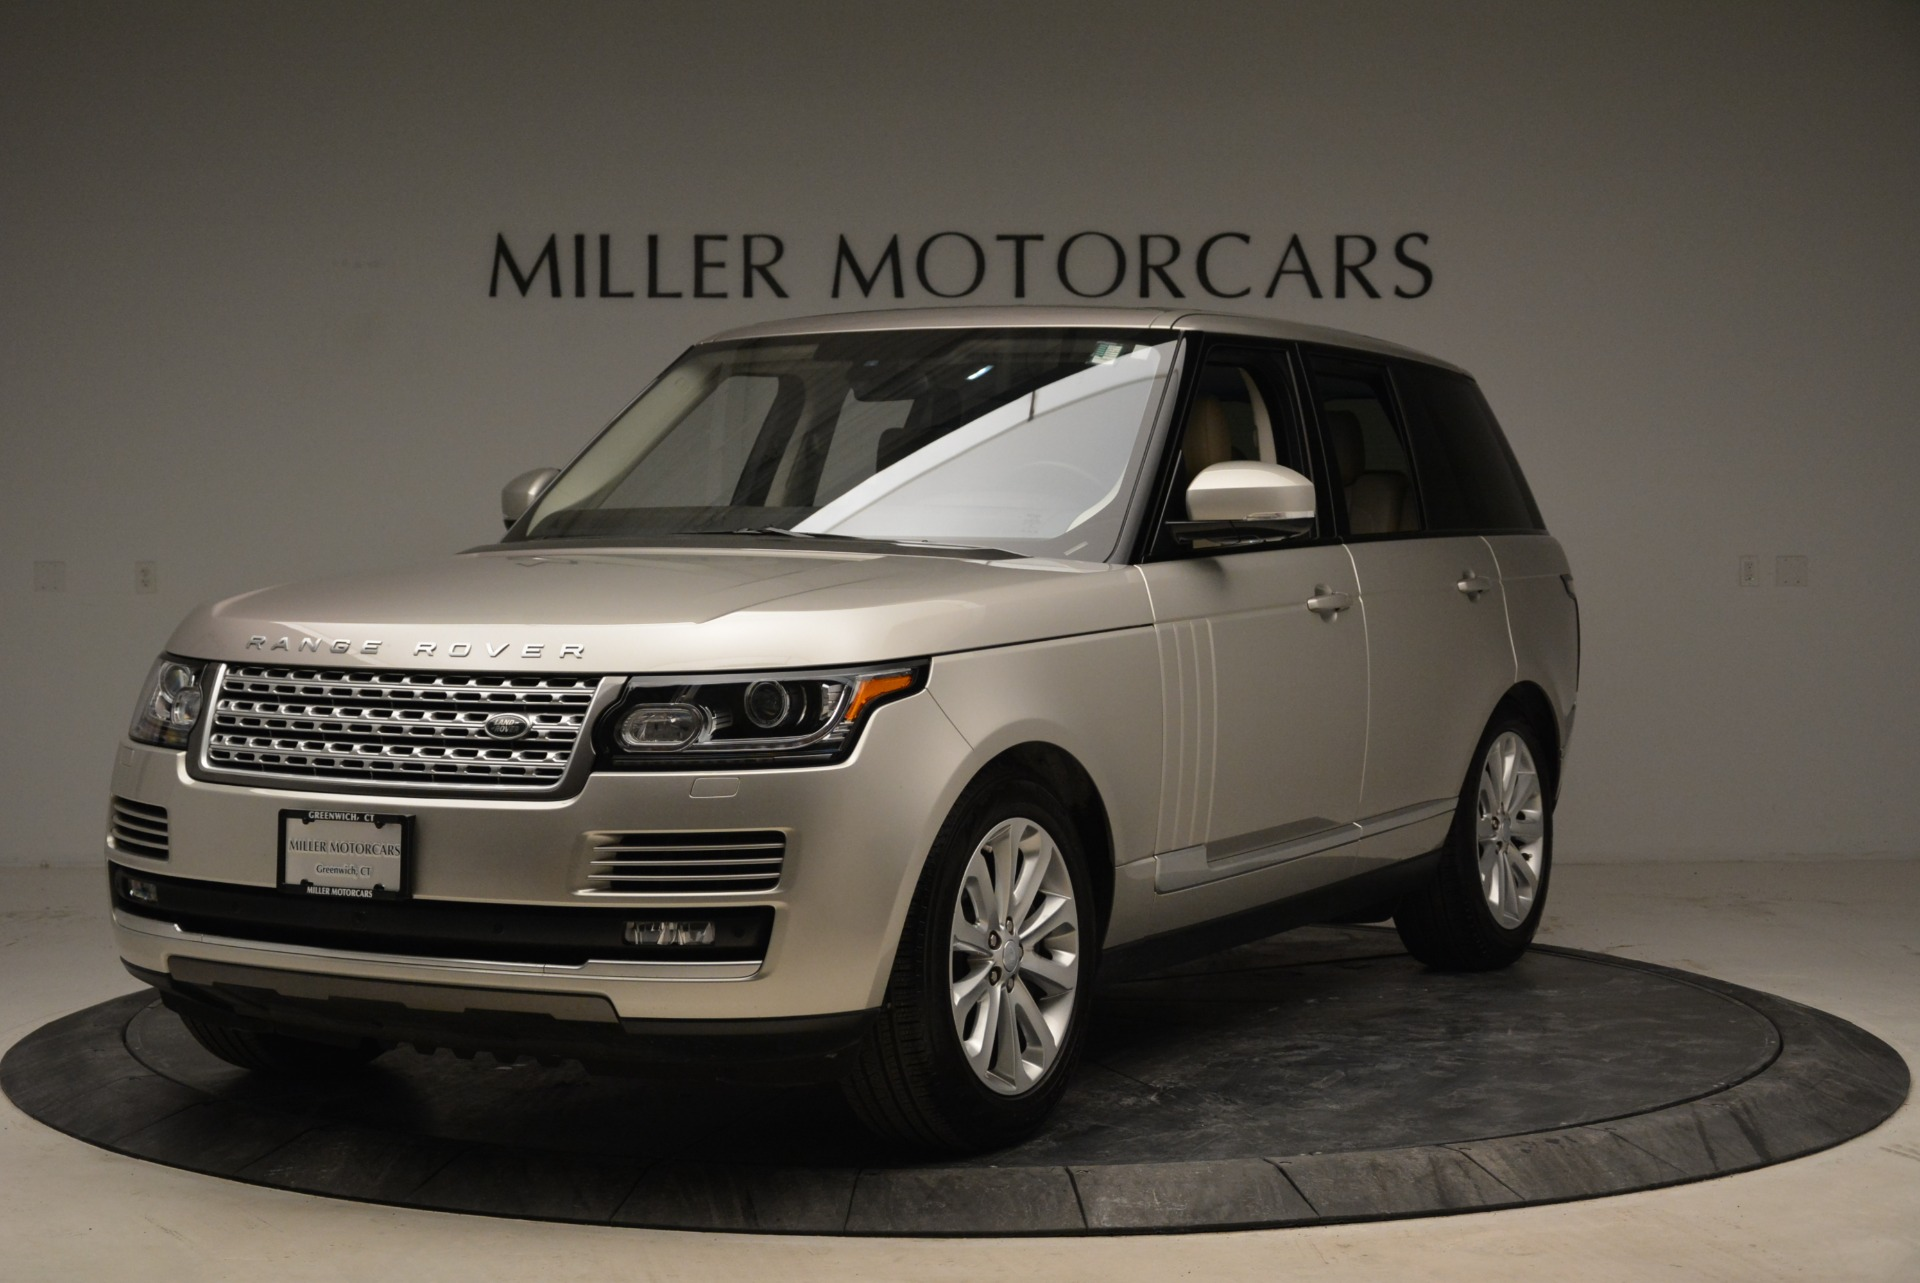 Used 2016 Land Rover Range Rover HSE for sale Sold at Bentley Greenwich in Greenwich CT 06830 1